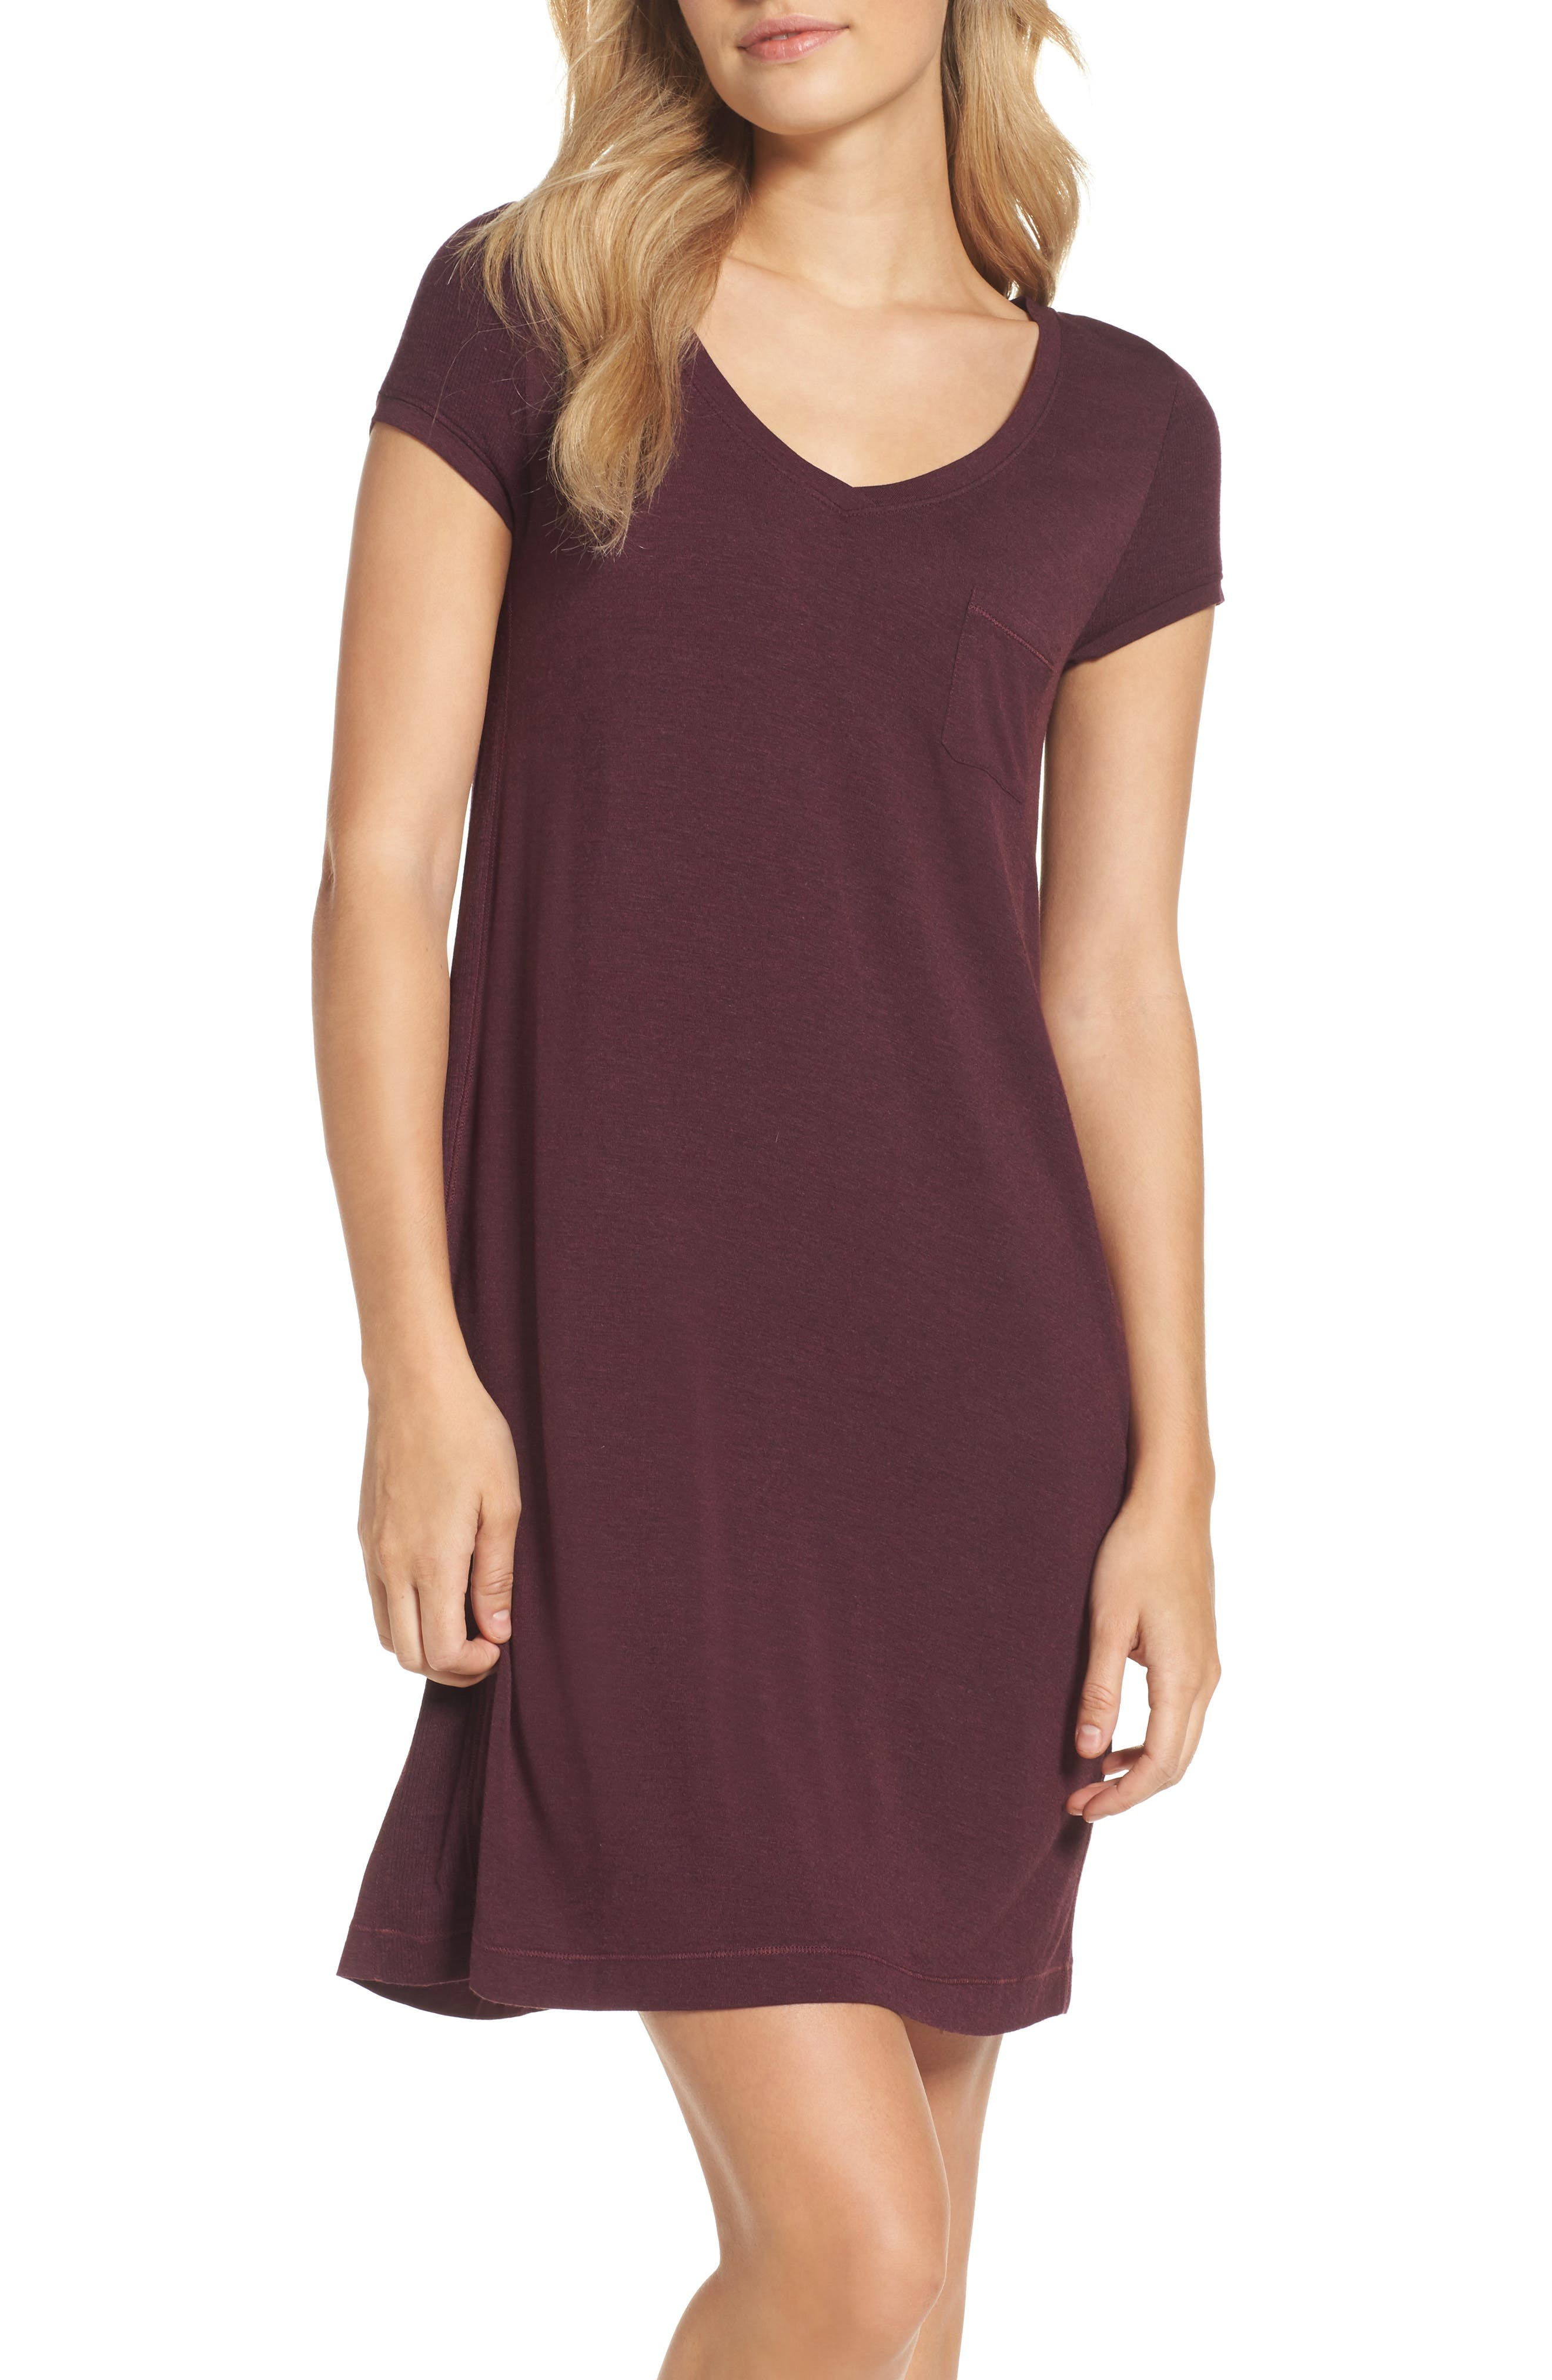 Jersey Nightgown,                             Main thumbnail 1, color,                             930